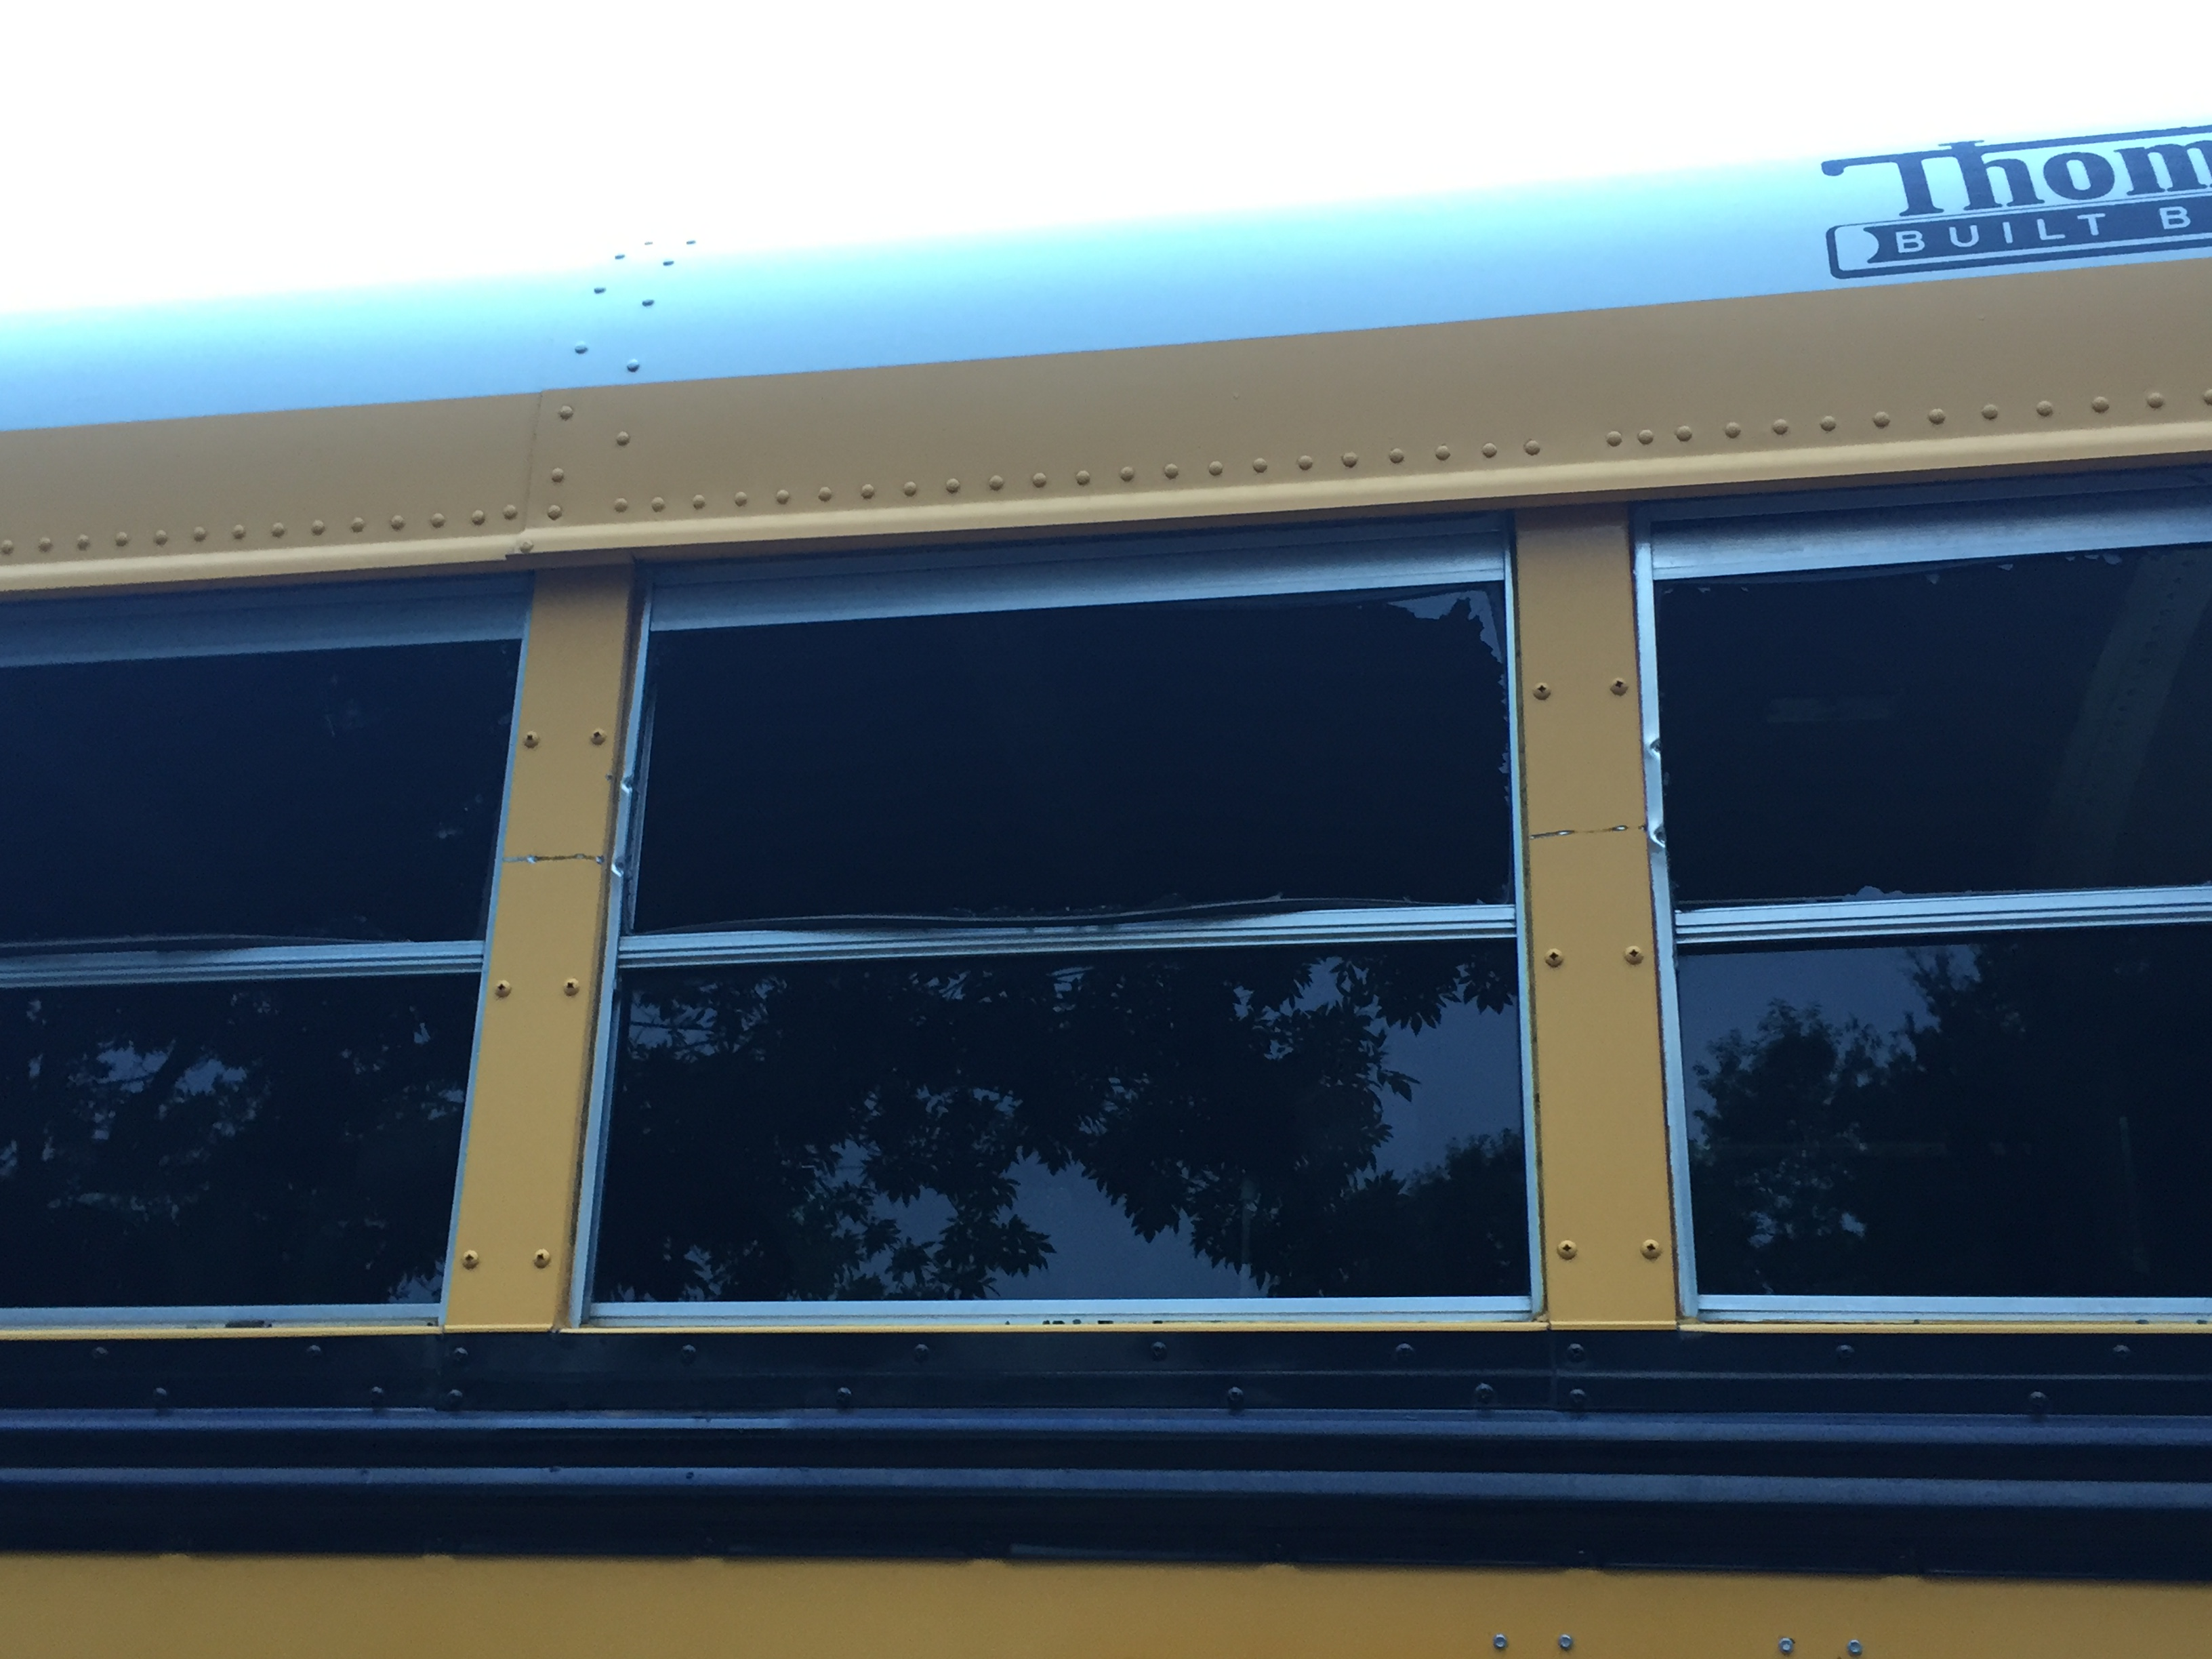 rogers school bus windows2